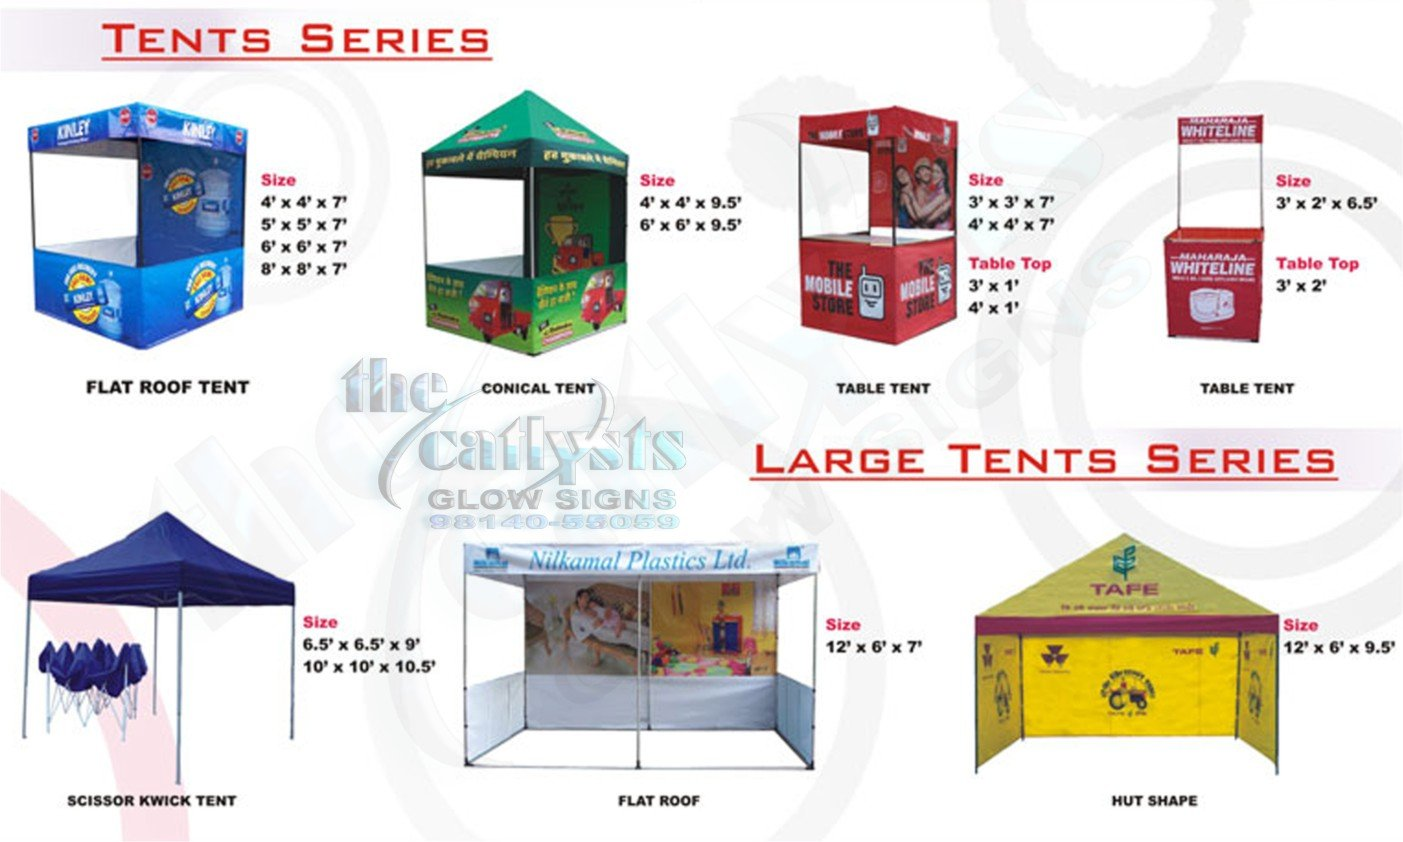 Hut Shaped Tents Hut Shape Floding Canopy Tent And Promotional ...